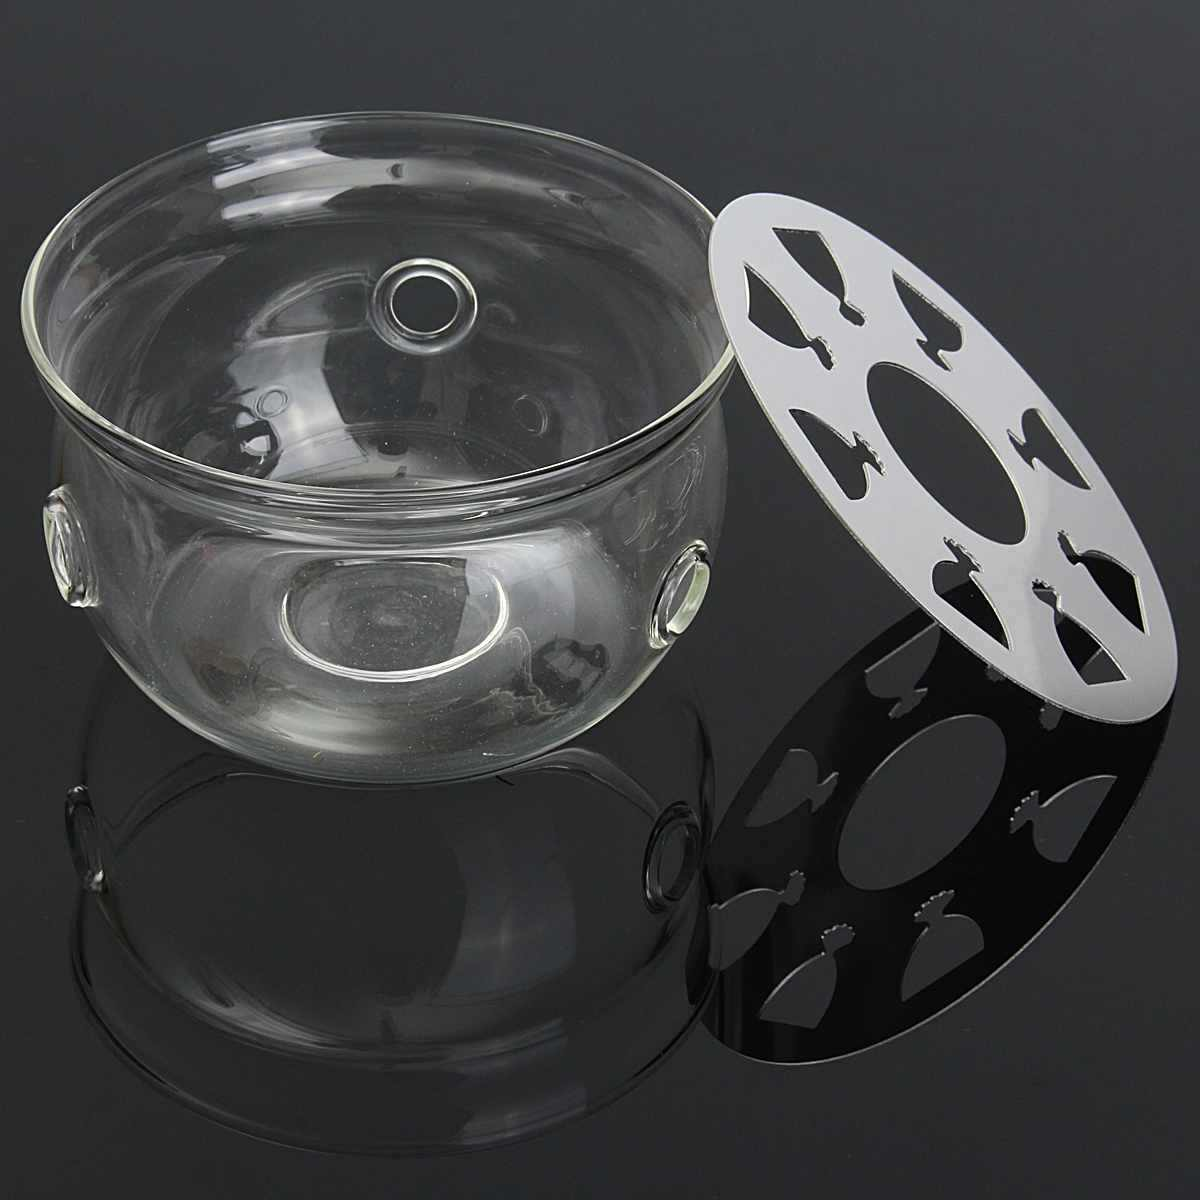 New 1pc Portable Clear Teapot Holder Base Coffee Water Tea Warmer Candle Holder Glass Heat-Resisting Teapot Warmer Insulation Ba